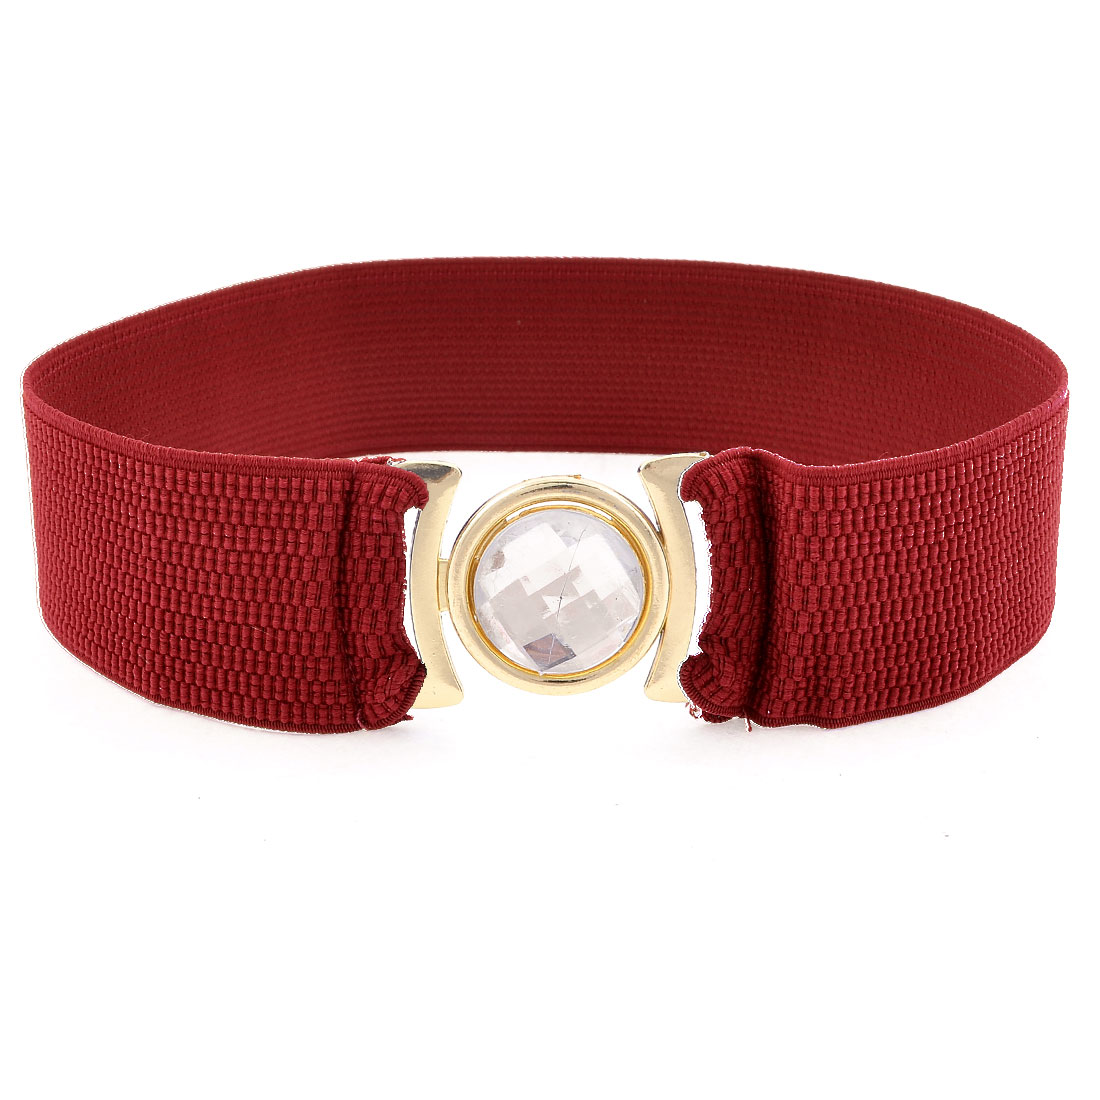 Lady Square Interlock Buckle Closure Elastic Hugging Dress Waist Belt Burgundy